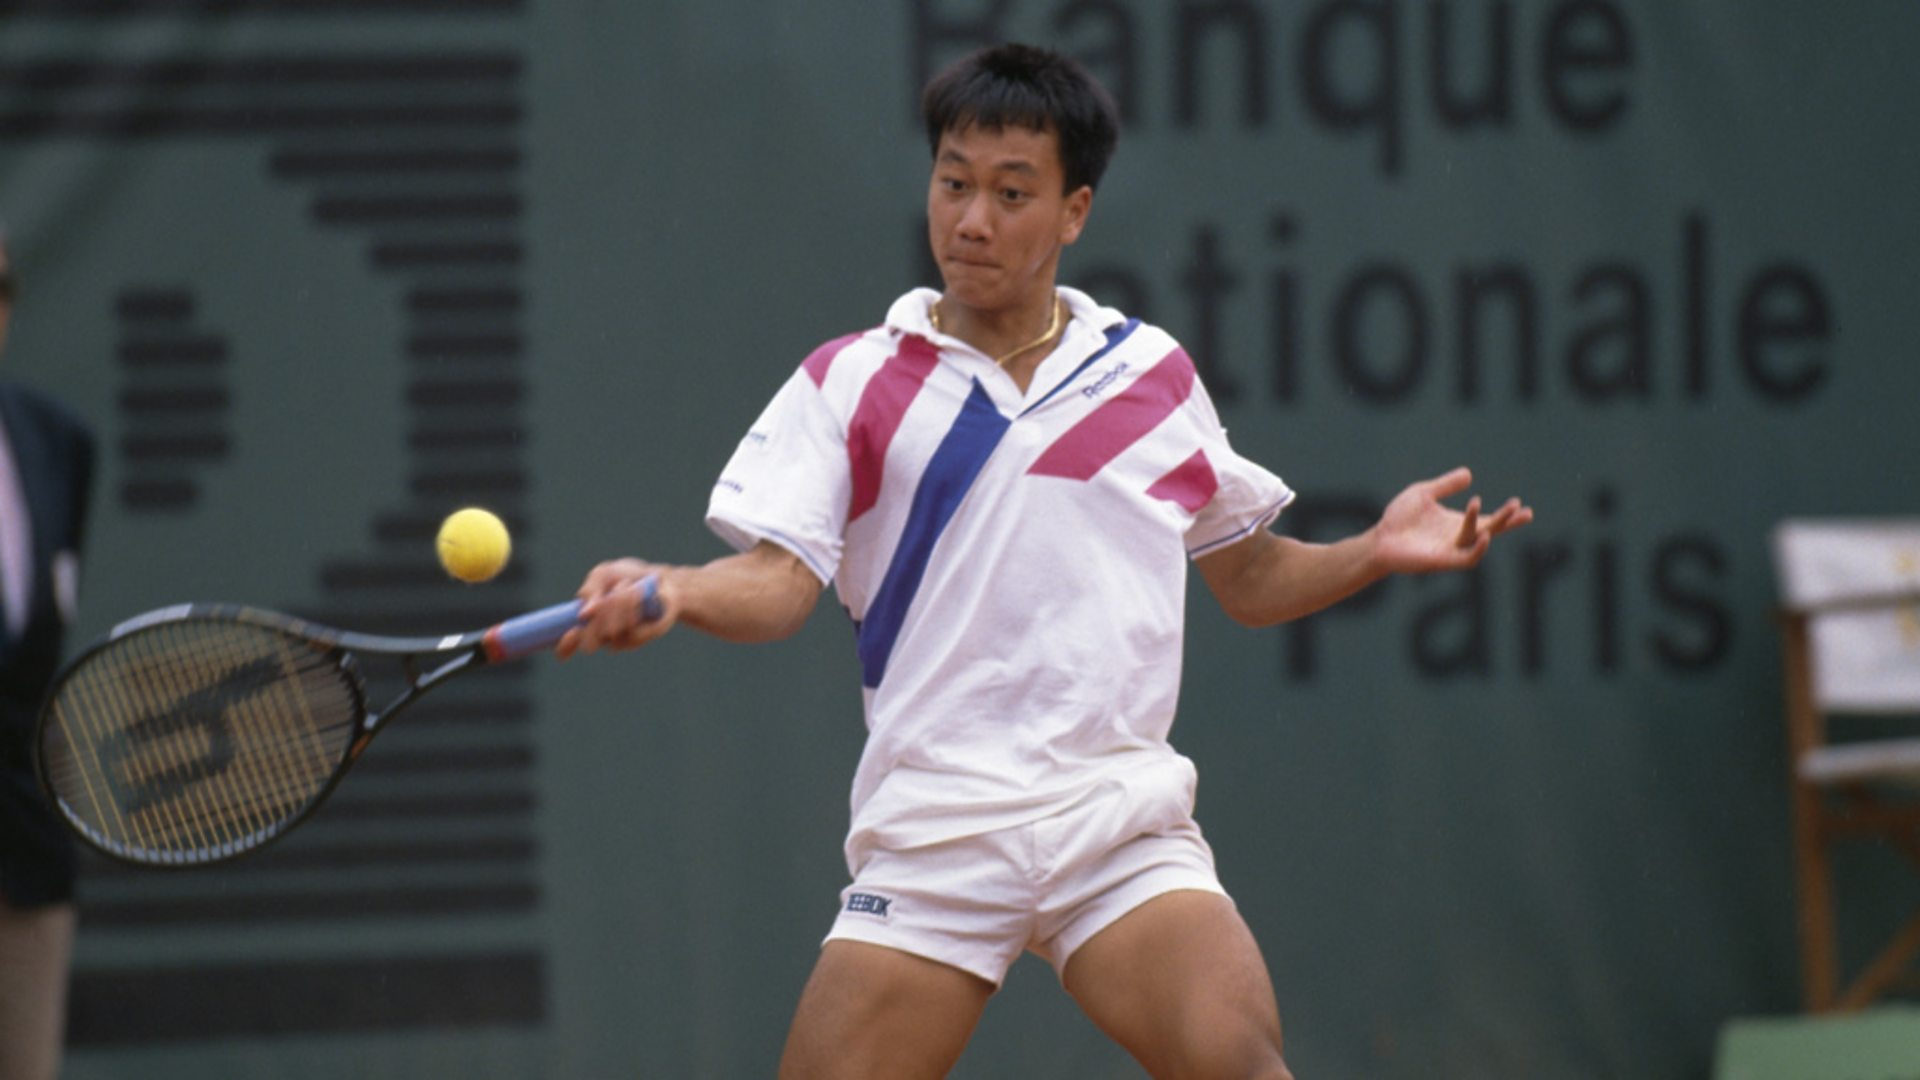 BBC World Service Sporting Witness Michael Chang wins the